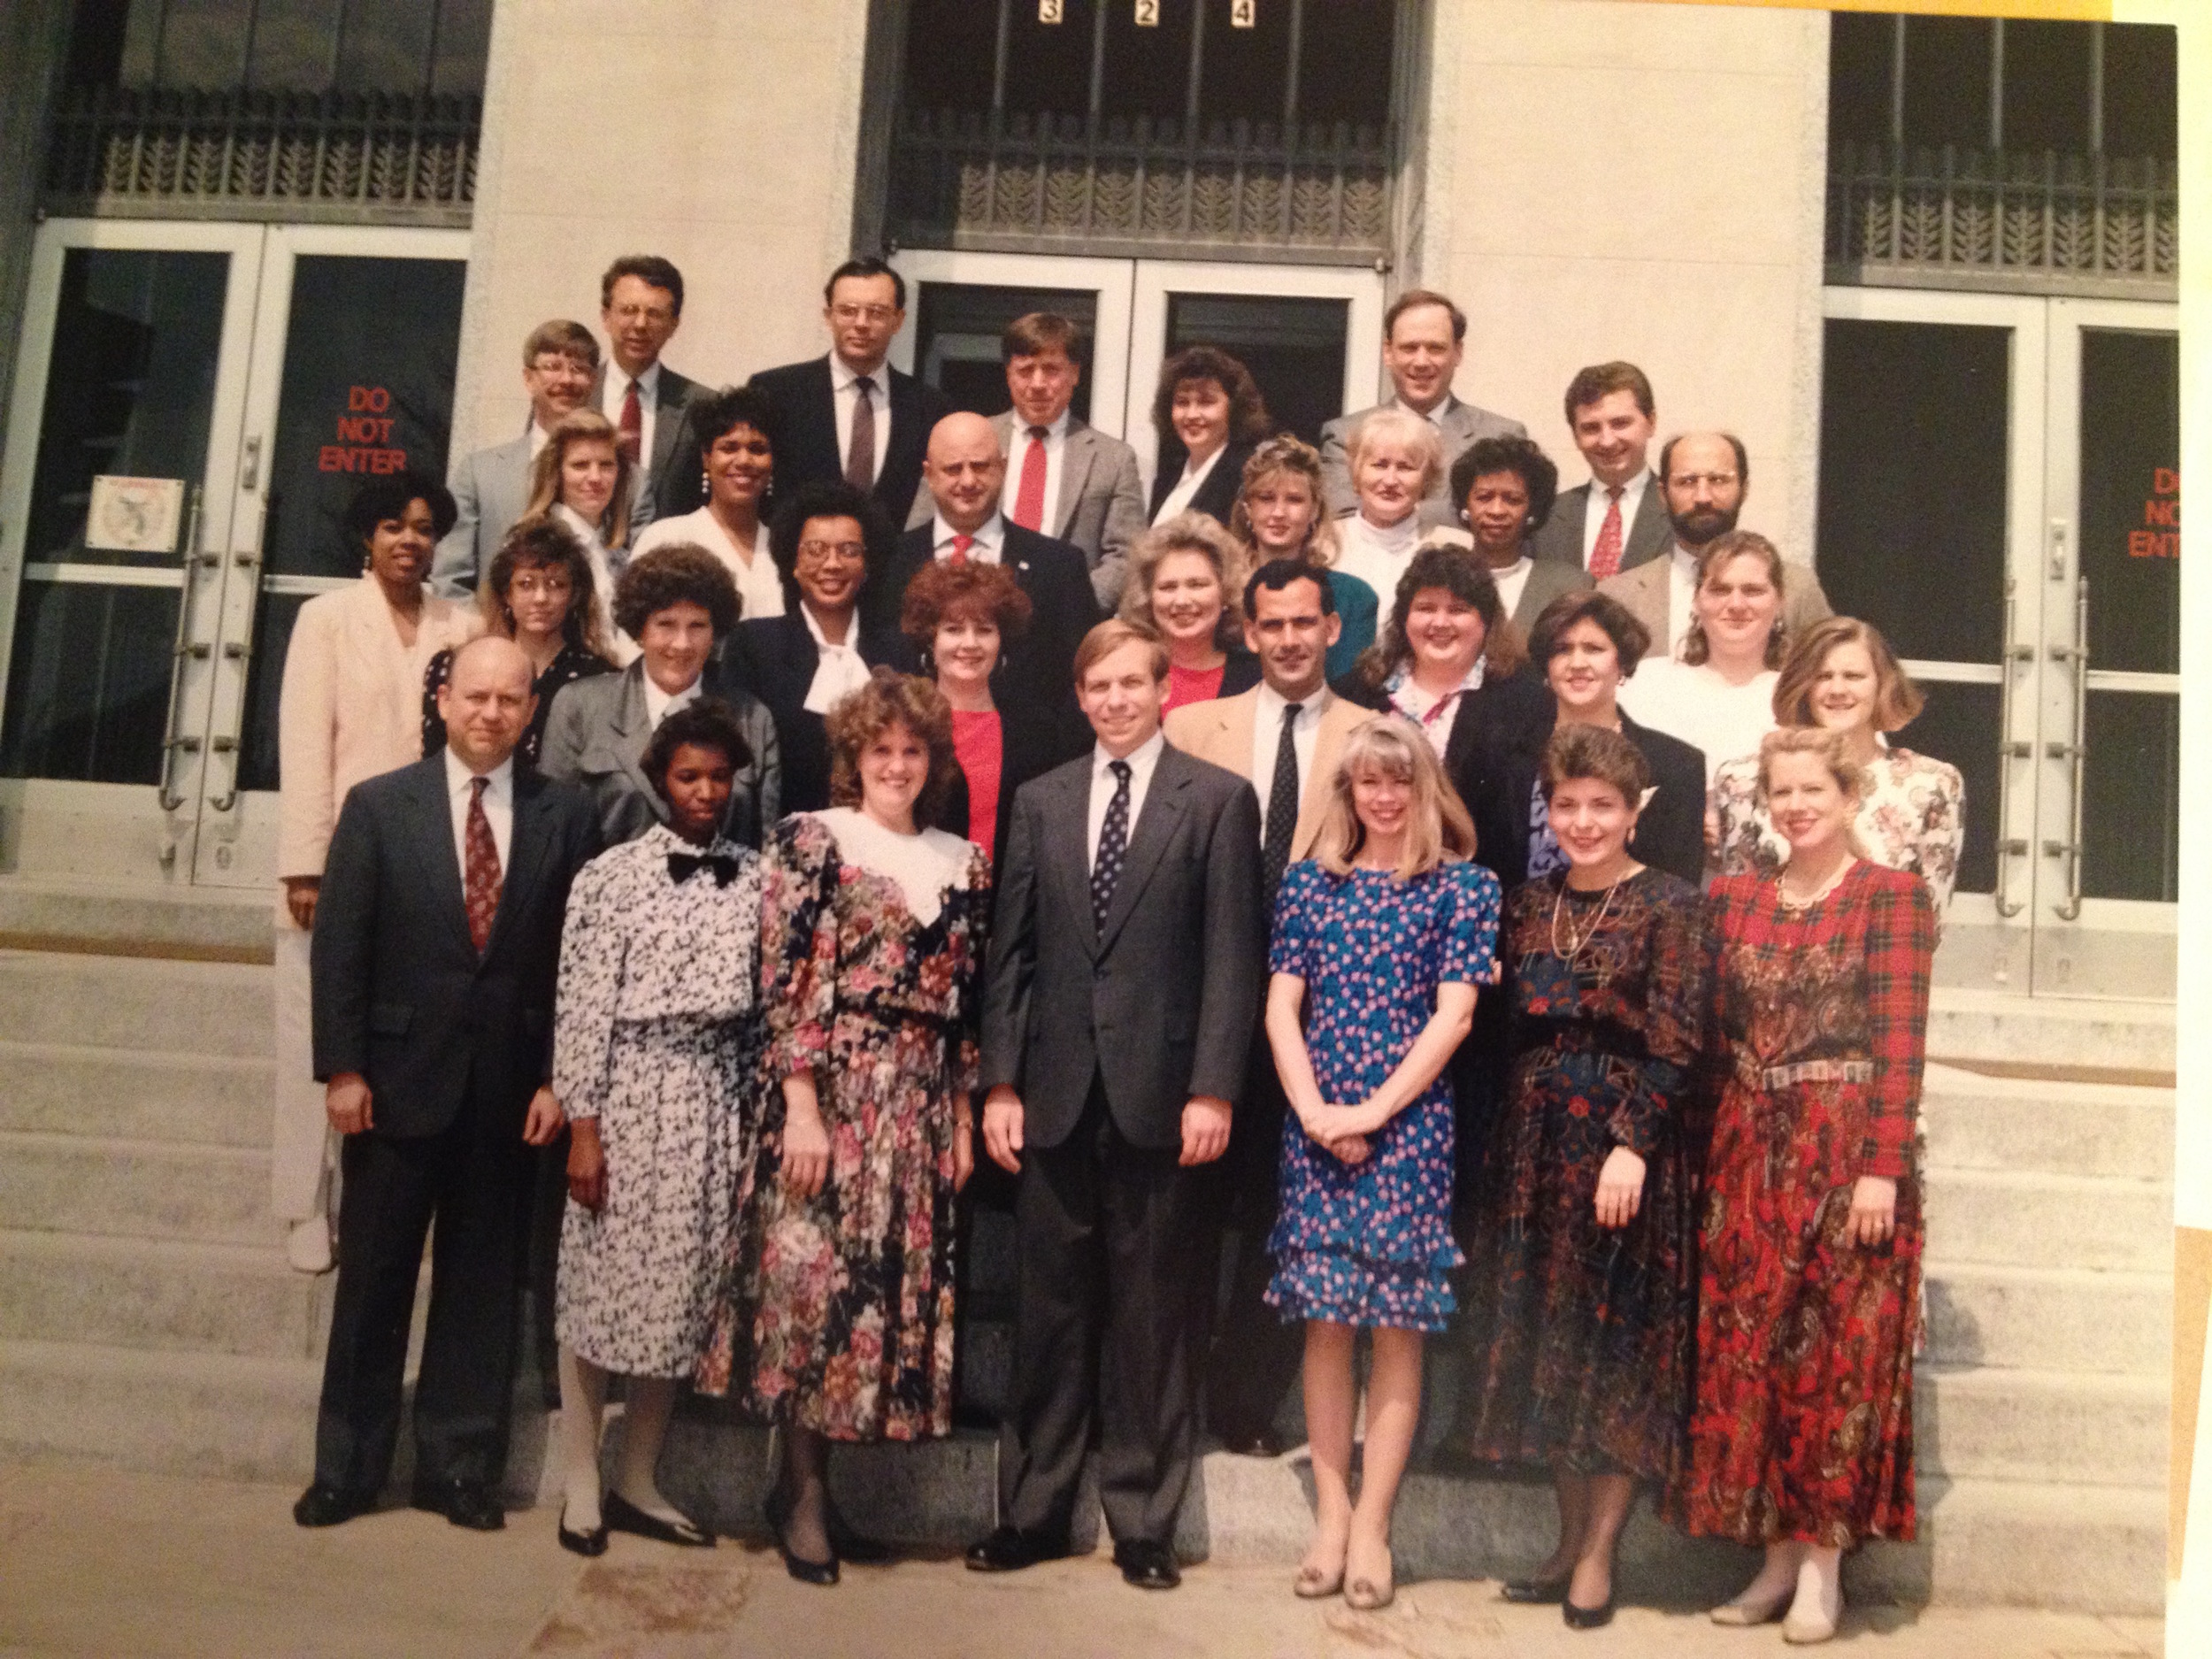 United States Attorney Edmunds and staff, circa 1990.